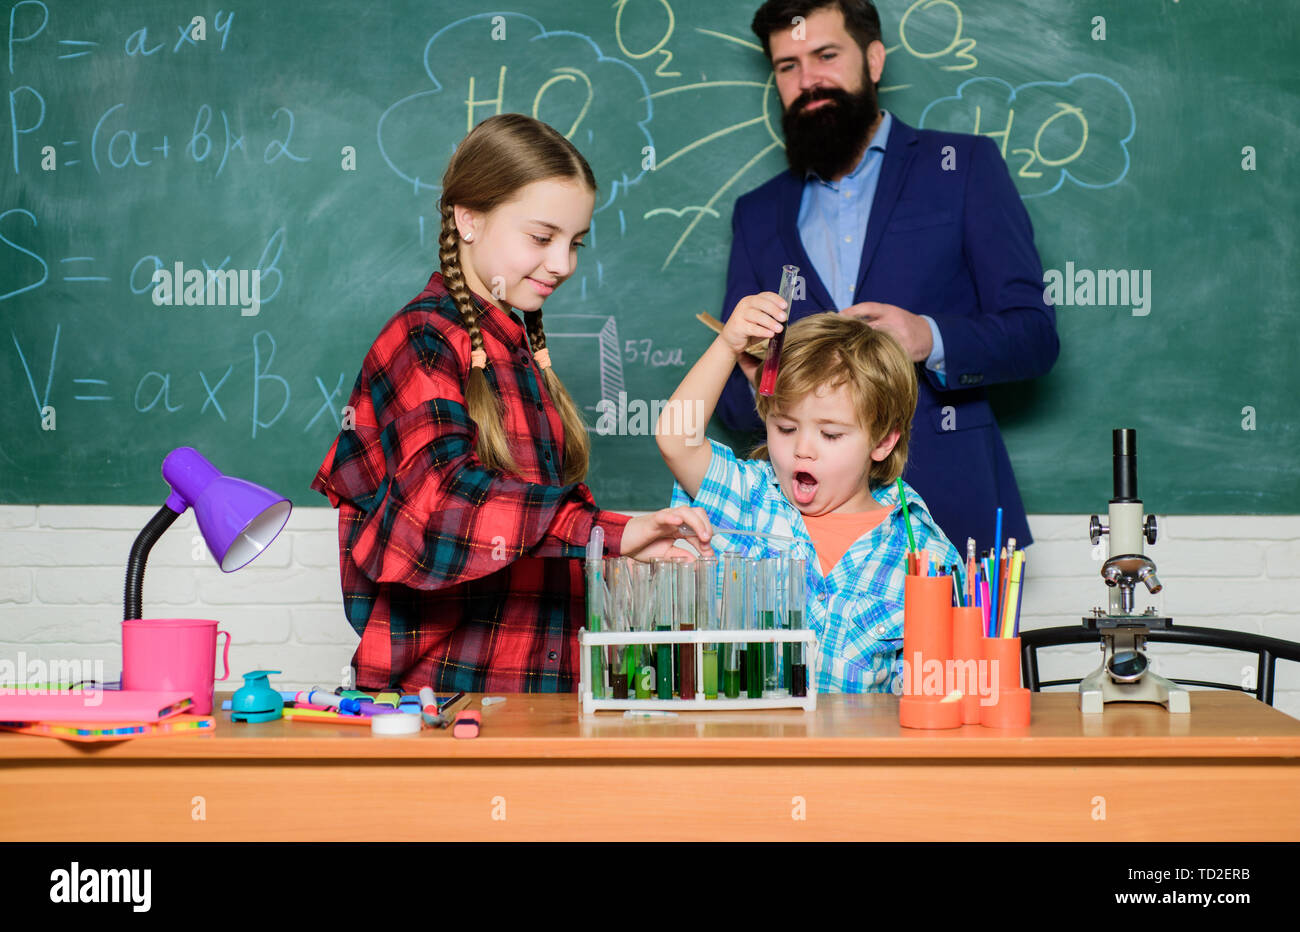 Formal education. Group interaction communication. Practical knowledge. Teaching kids sharing important knowledge. Study with friends is fun. Younger learn from older. With experience comes knowledge. - Stock Image